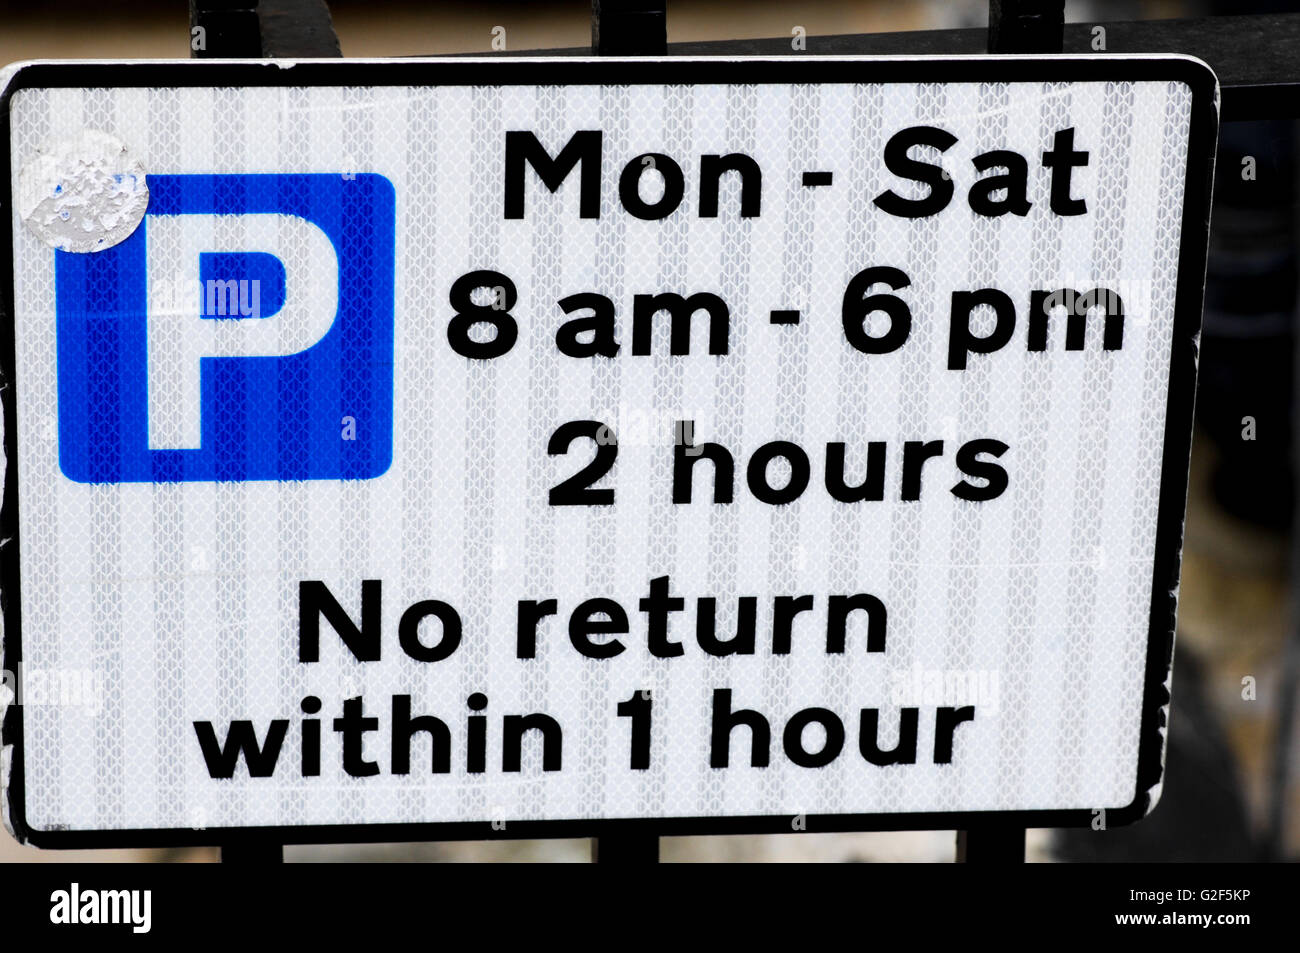 Parking waiting times schedule limits - Stock Image